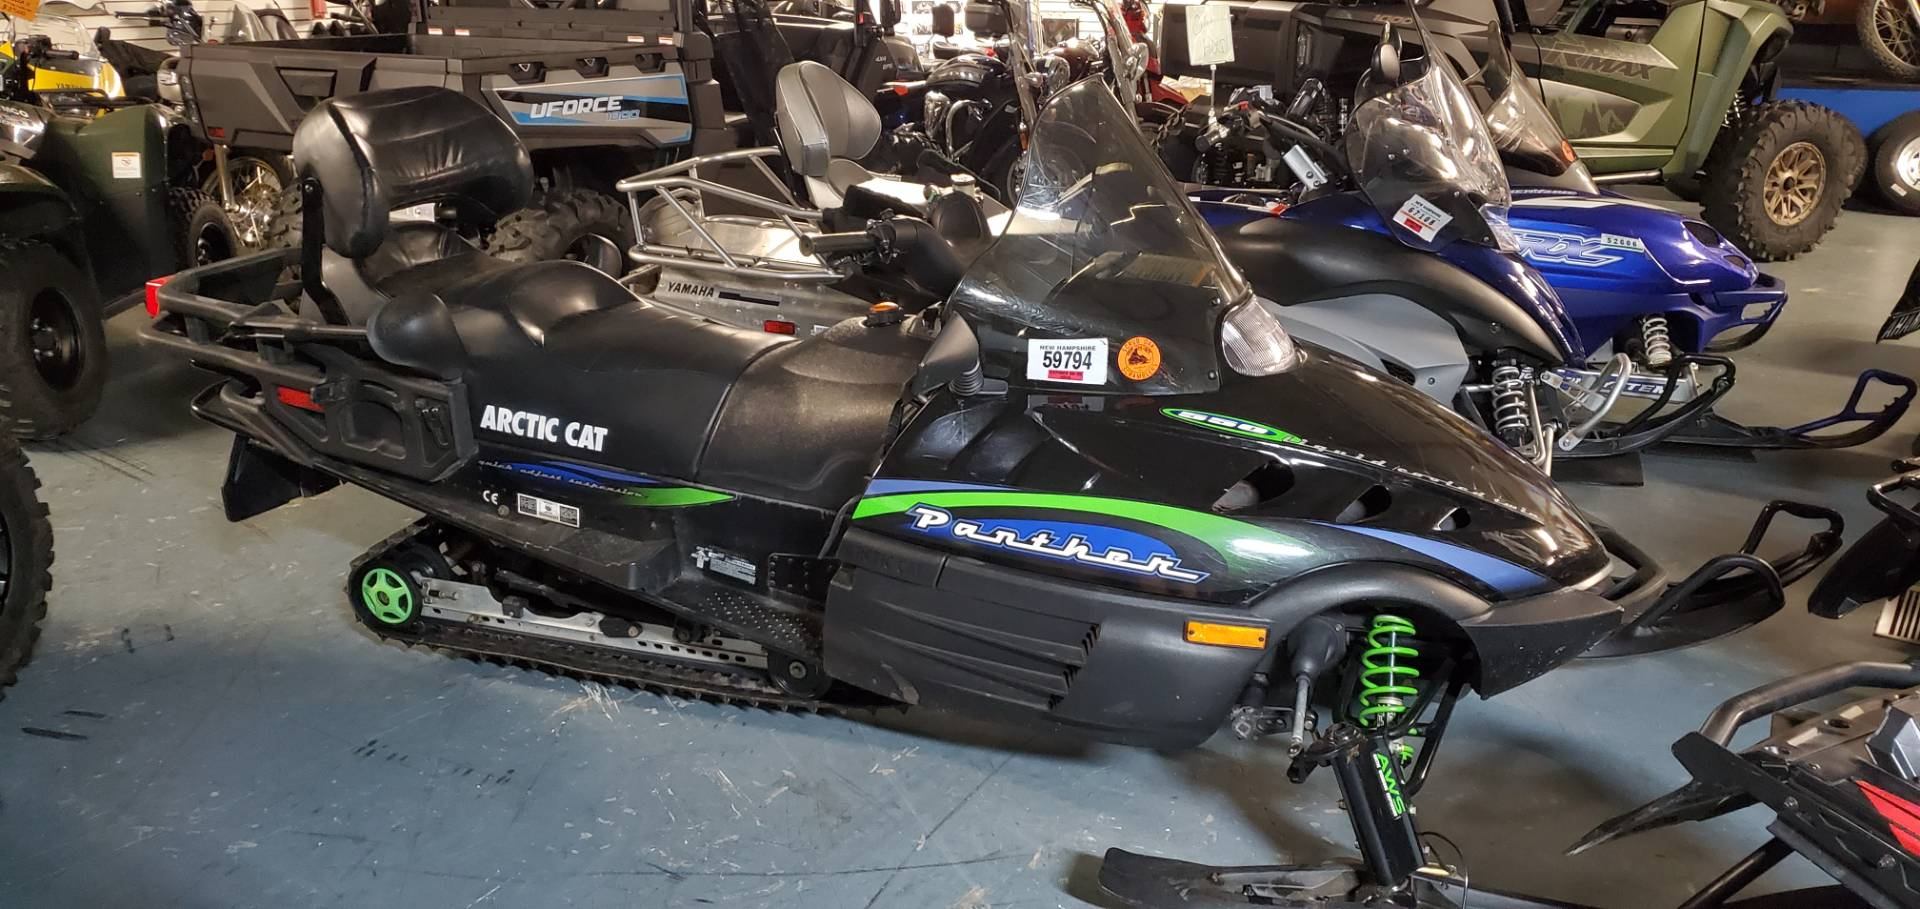 2000 Arctic Cat Panther® 550 in Tamworth, New Hampshire - Photo 1